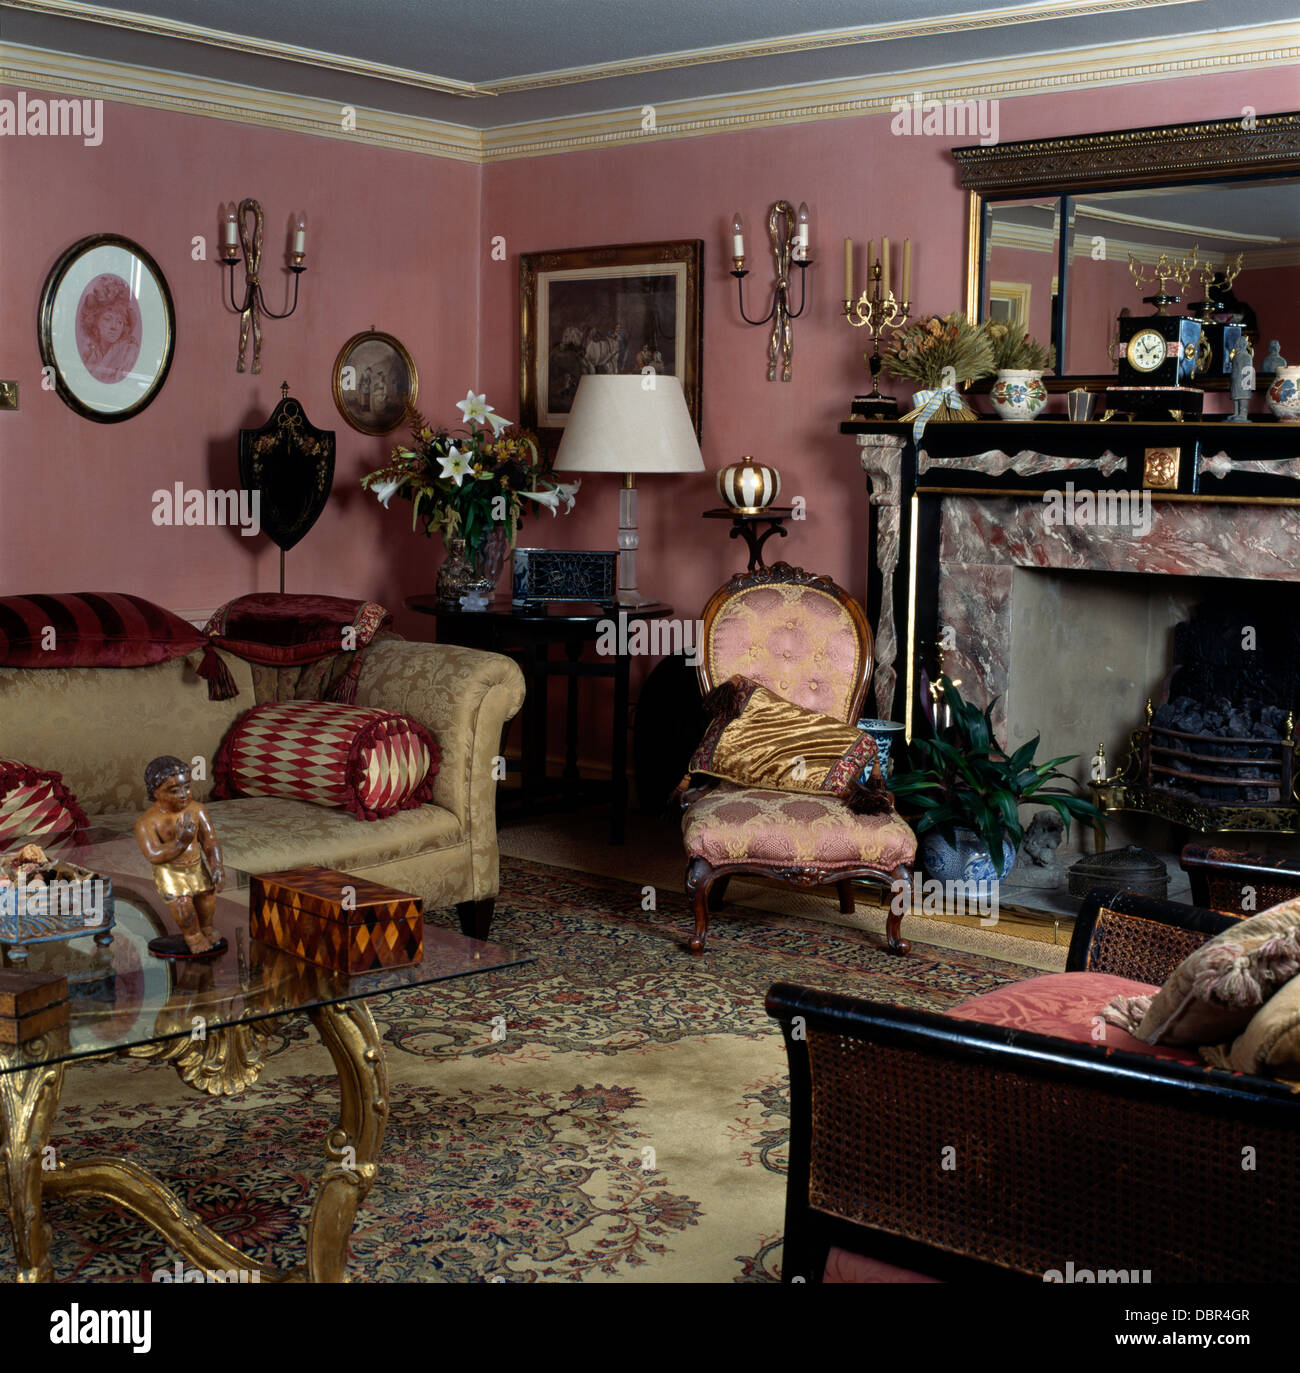 Damask Silk Victorian Chair And Beige Sofa In Dark Pink